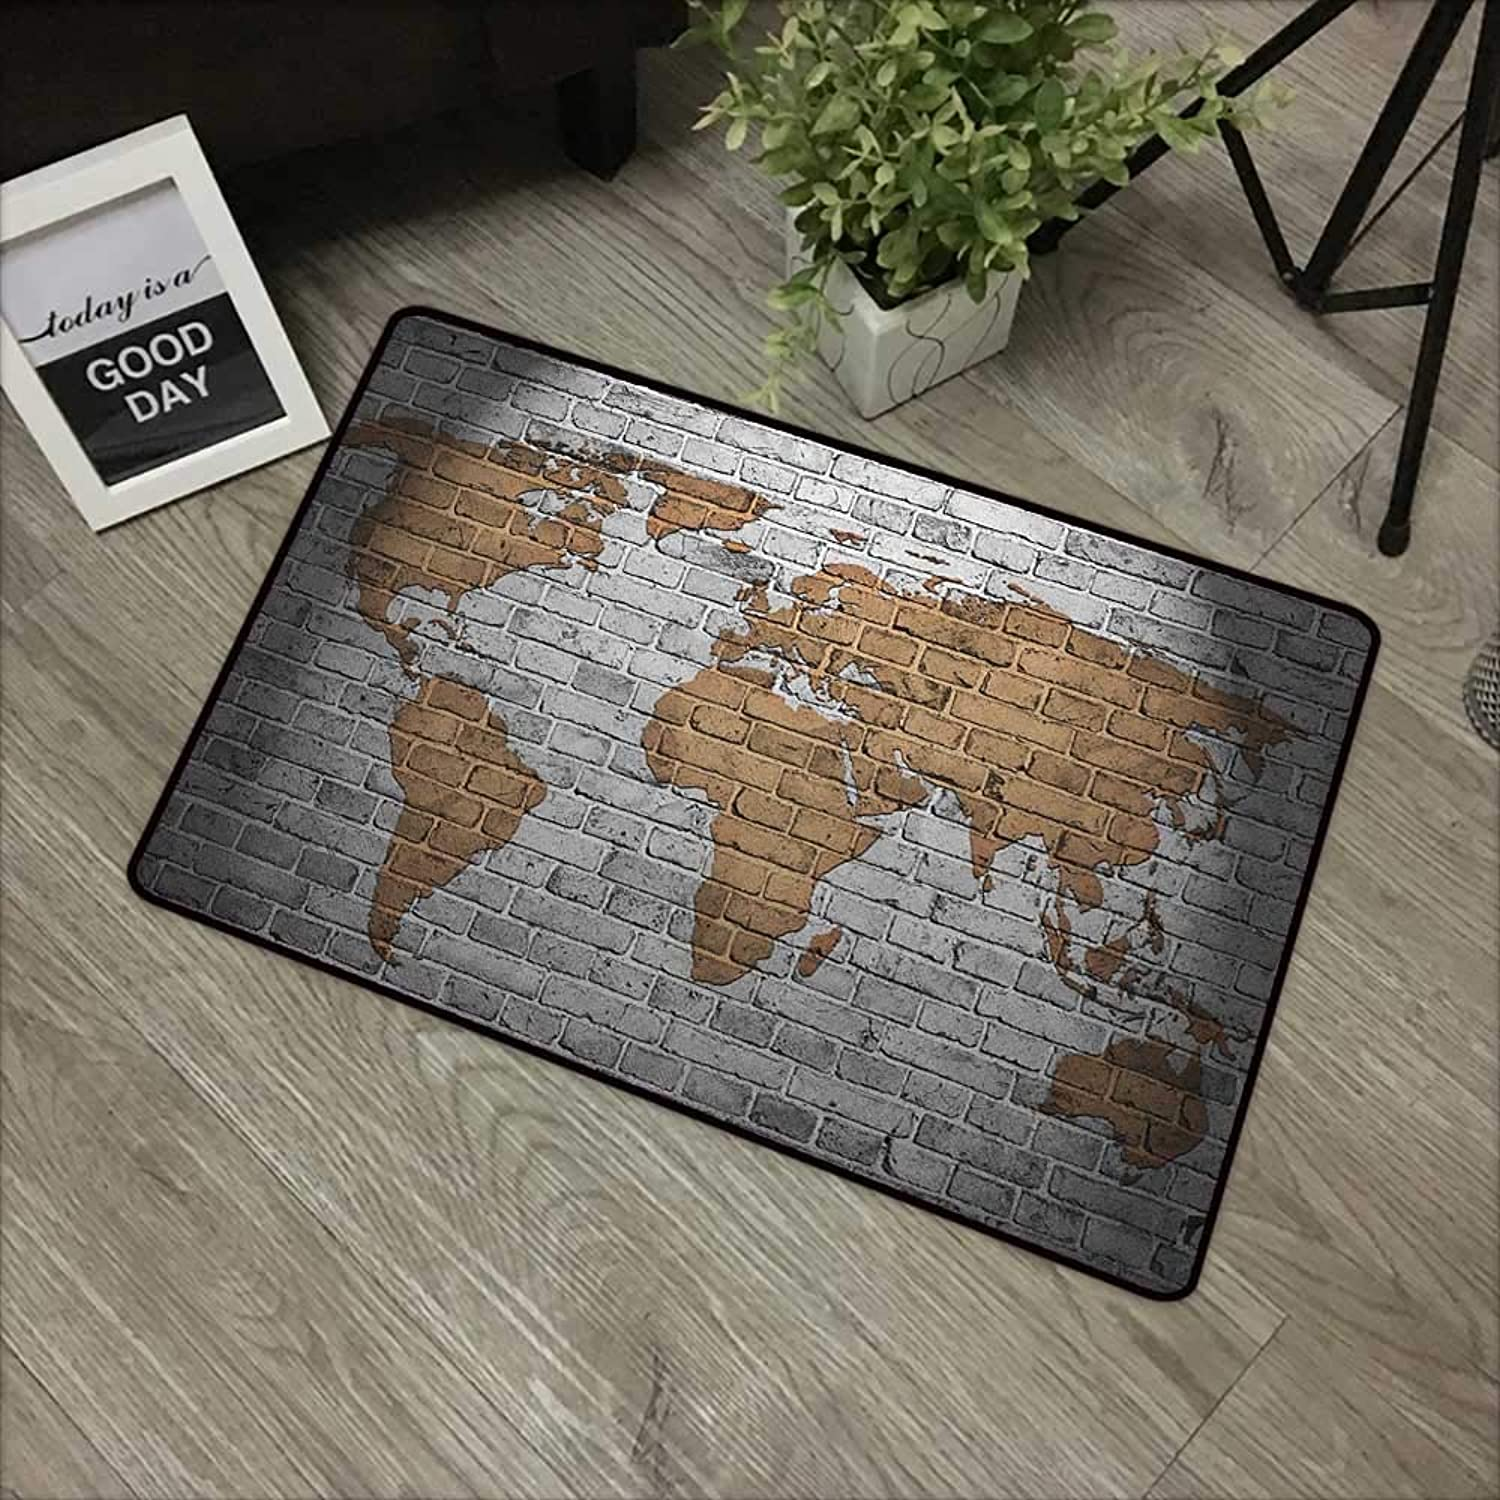 Bathroom Door mat W35 x L59 INCH Wanderlust,World Map on Old Brick Wall Countries Continents Aged Vintage Rough, Pale Grey Pale Brown Easy to Clean, Easy to fold,Non-Slip Door Mat Carpet